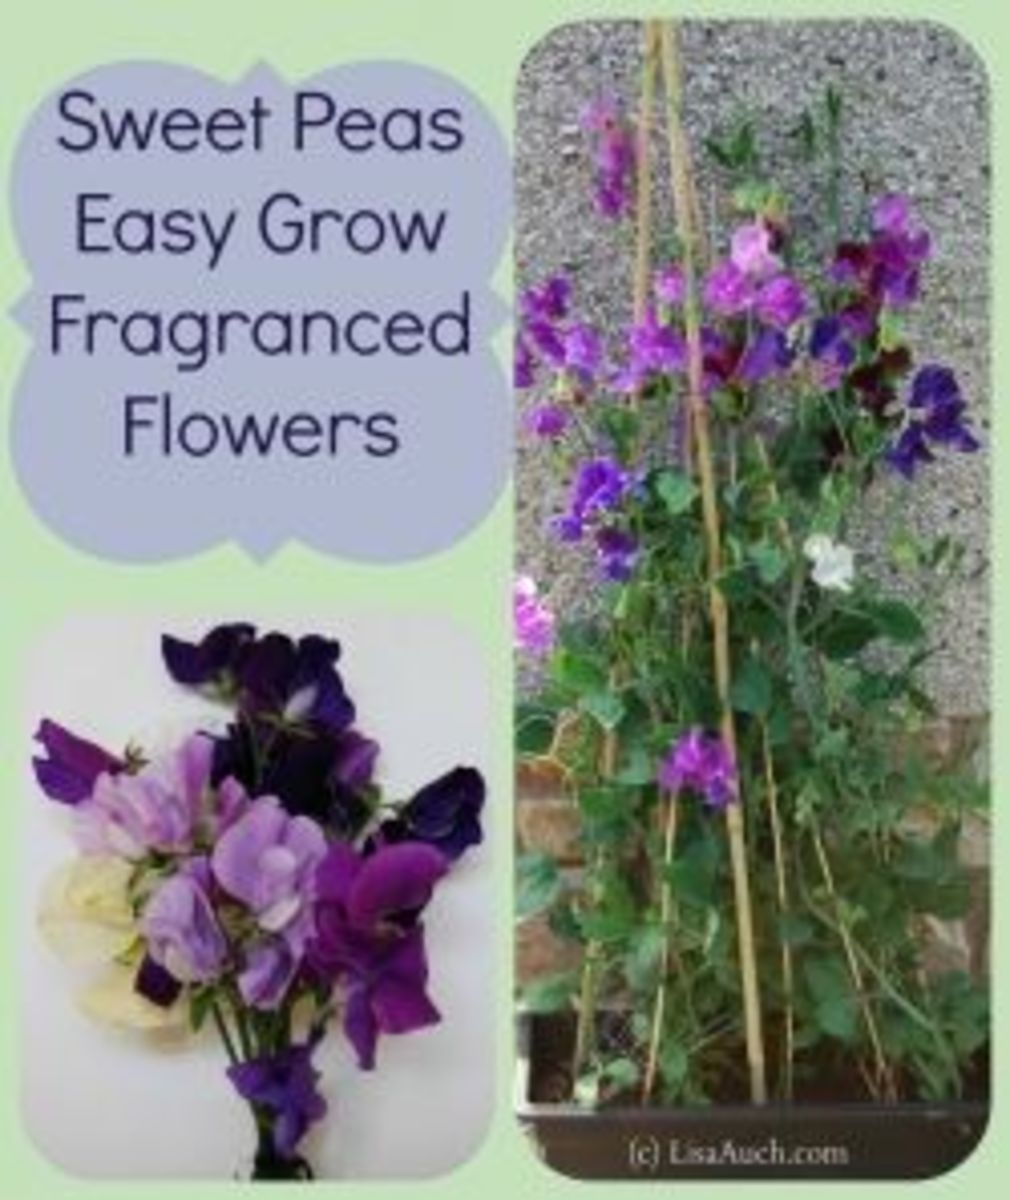 Sweet Peas Easy To Grow Fragranced Flowers From Seeds